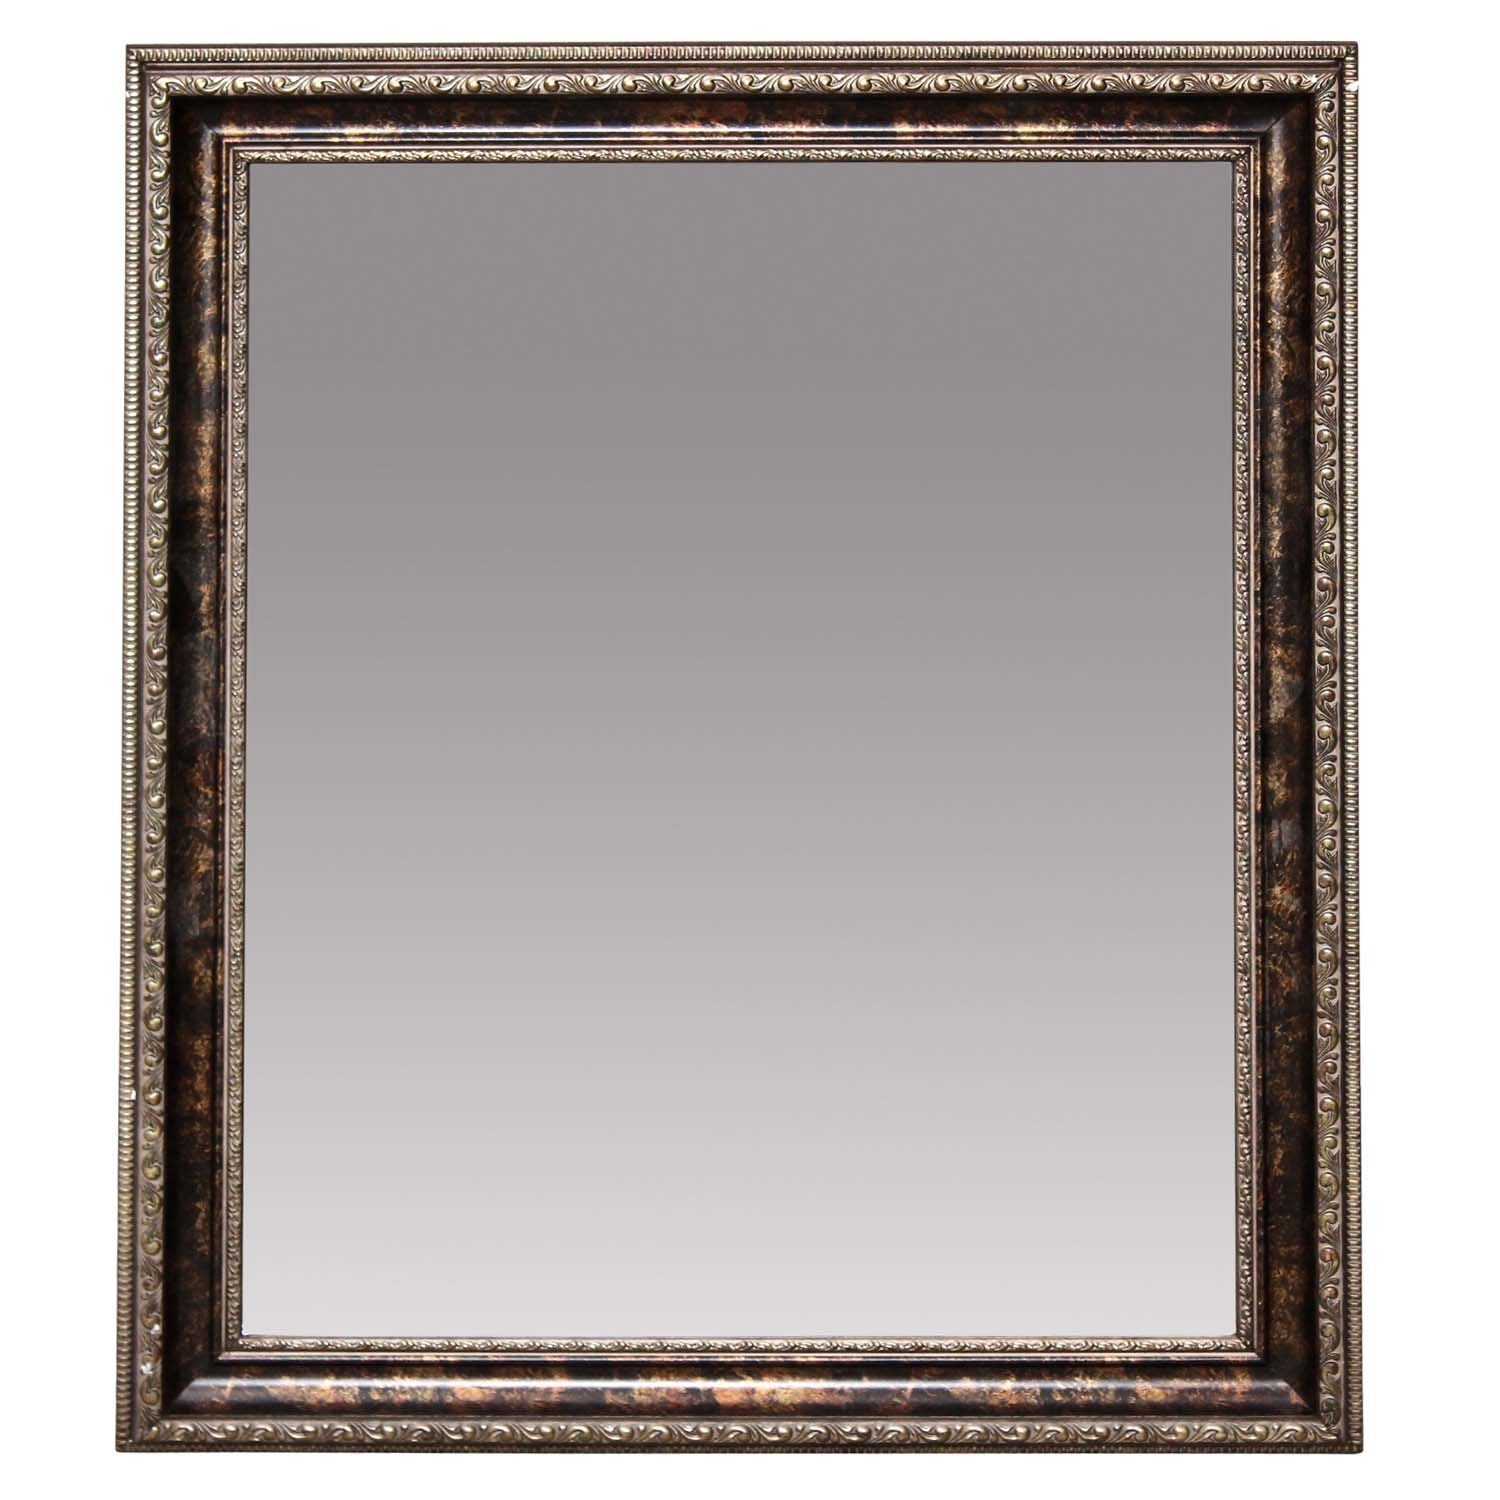 Framed Beveled Wall Mirror, Contemporary